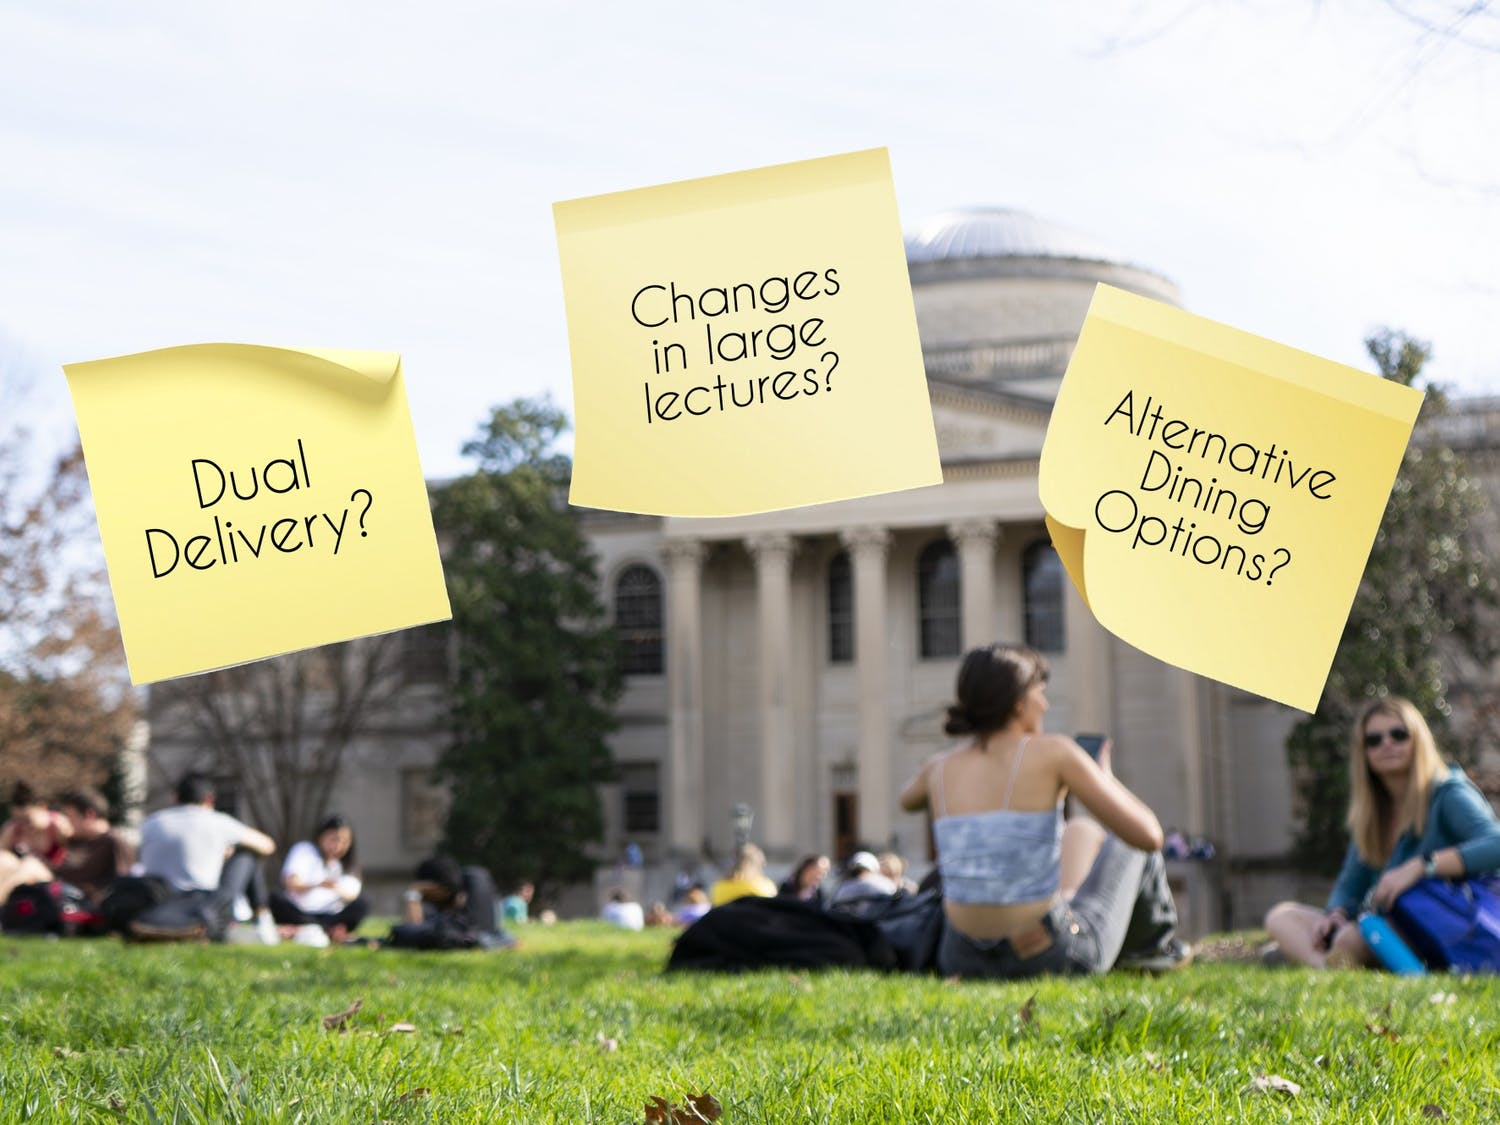 Students sit on the quad at Polk Place on Monday, February 3, 2020. Added graphics refer to the questions surrounding a return to UNC's campus in mid-August of 2020 for the Fall 2020 semester at what will hopefully be the tail end of the COVID-19 pandemic.